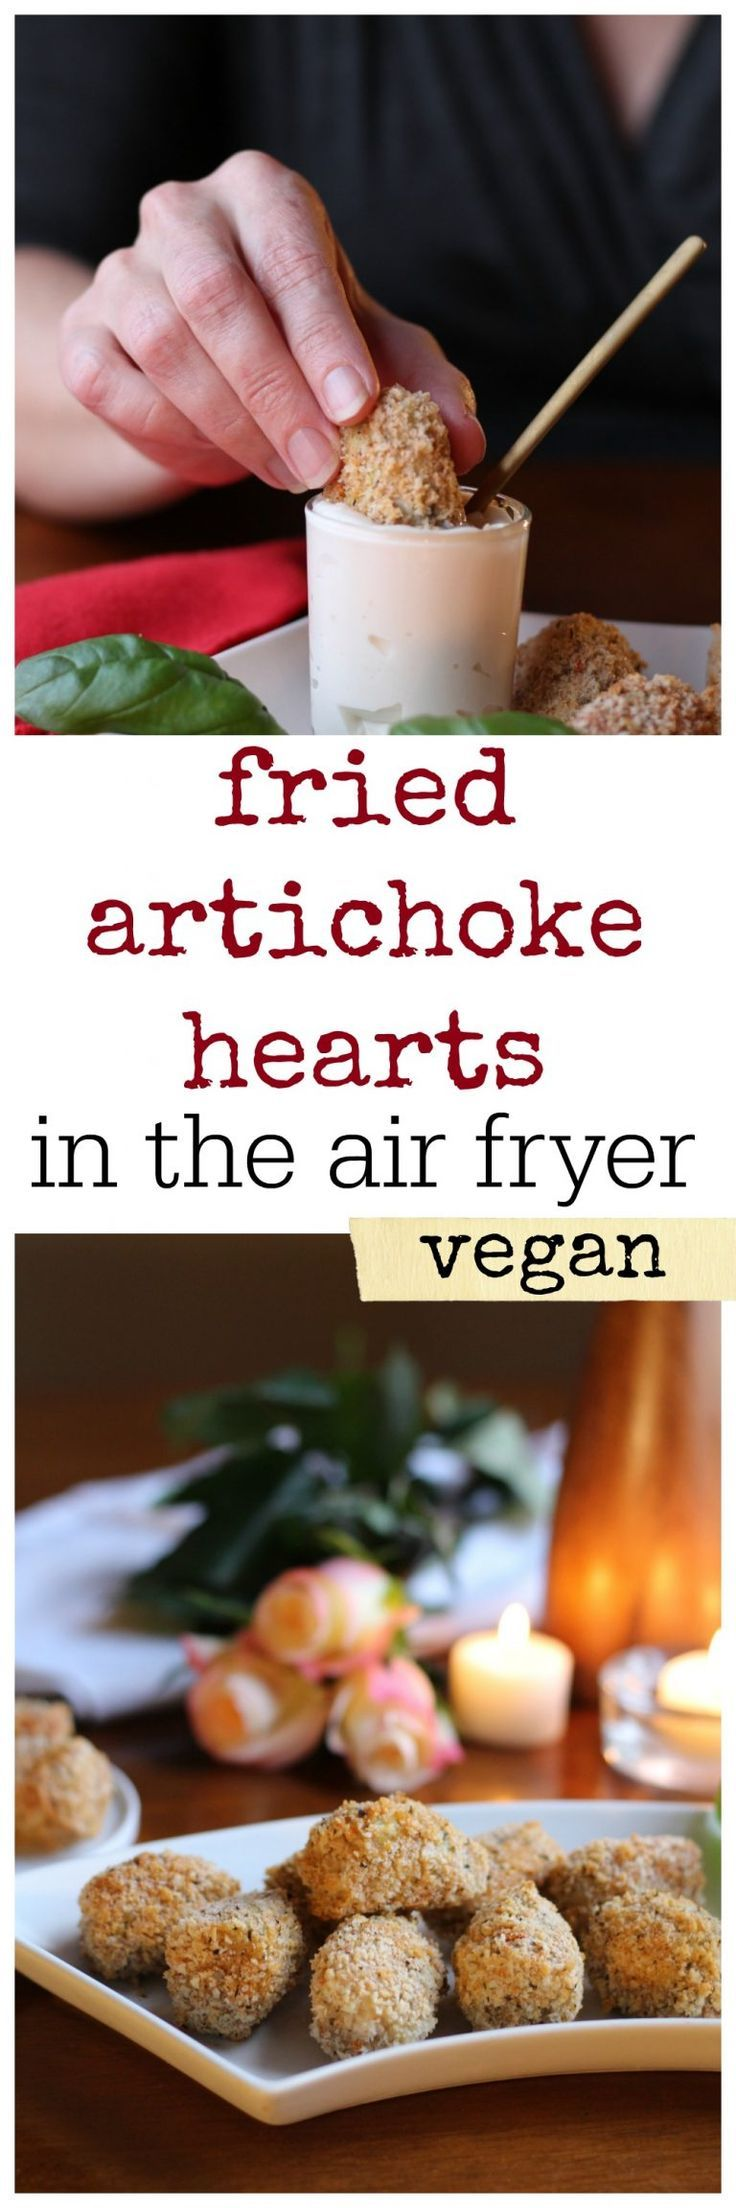 Vegan fried artichoke hearts - in the air fryer! Dip these crisp bites into vegan aioli with lemon and garlic. #sponsored #vegan #aioli #appetizer #airfryer #starter #recipe #artichokes #gowiseusa #gowise